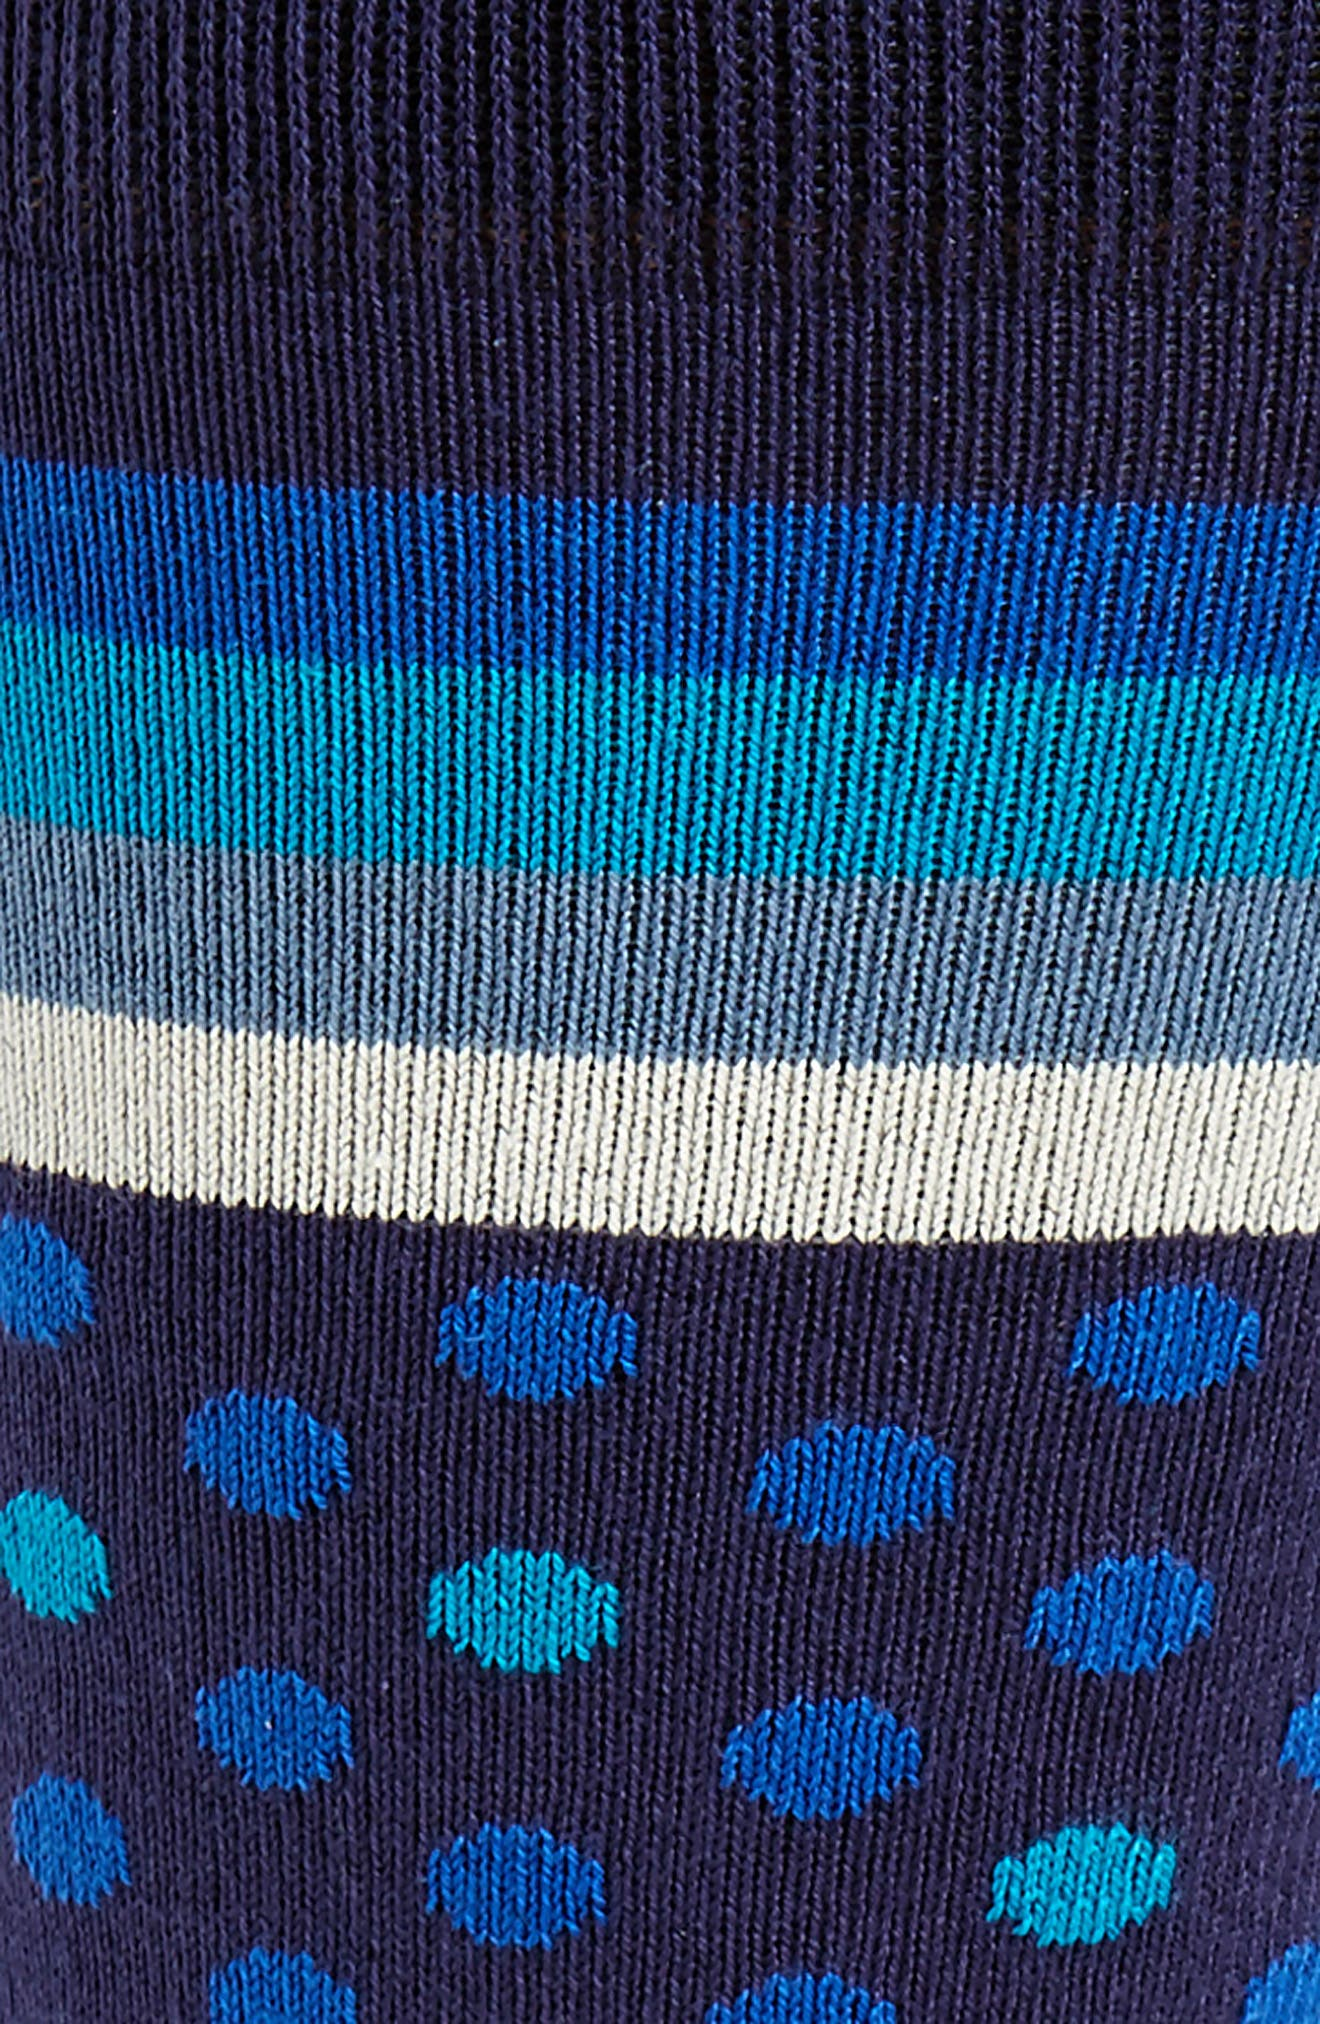 Dot & Stripe Socks,                             Alternate thumbnail 2, color,                             Blue